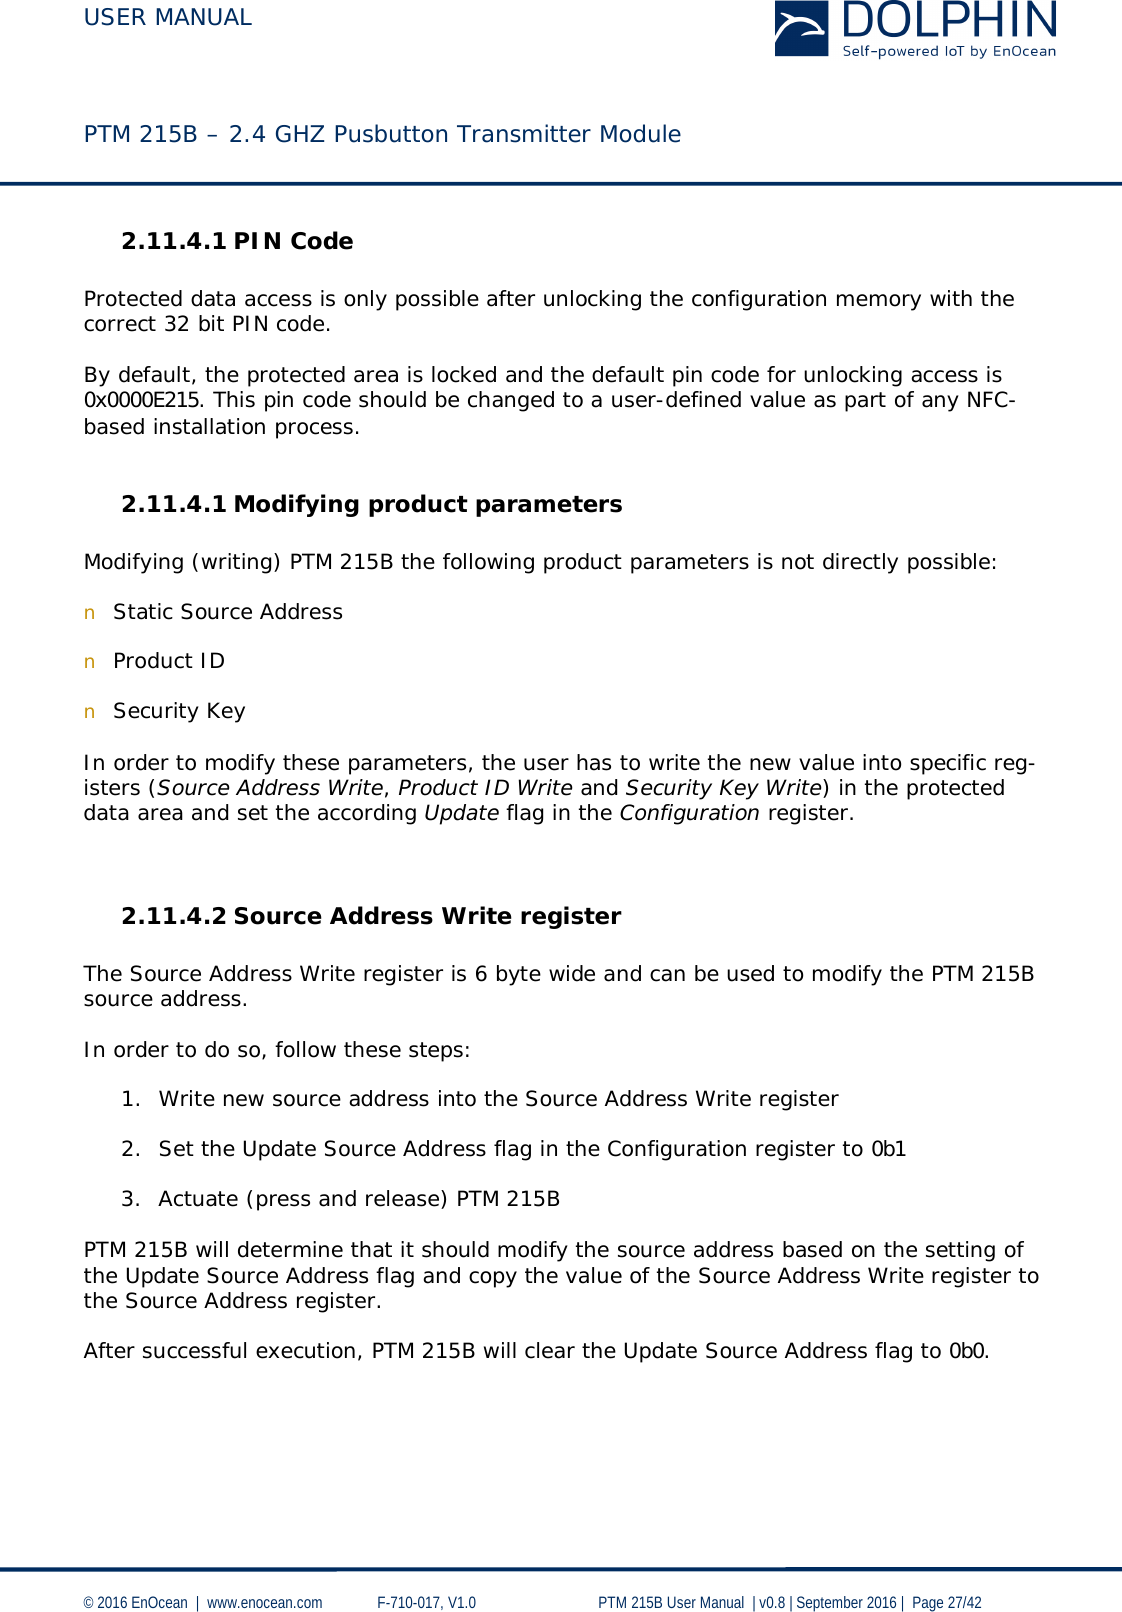 USER MANUAL    PTM 215B – 2.4 GHZ Pusbutton Transmitter Module  © 2016 EnOcean     www.enocean.com   F-710-017, V1.0        PTM 215B User Manual    v0.8   September 2016    Page 27/42  2.11.4.1 PIN Code  Protected data access is only possible after unlocking the configuration memory with the correct 32 bit PIN code.  By default, the protected area is locked and the default pin code for unlocking access is 0x0000E215. This pin code should be changed to a user-defined value as part of any NFC-based installation process.  2.11.4.1 Modifying product parameters  Modifying (writing) PTM 215B the following product parameters is not directly possible:  n Static Source Address  n Product ID  n Security Key  In order to modify these parameters, the user has to write the new value into specific reg-isters (Source Address Write, Product ID Write and Security Key Write) in the protected data area and set the according Update flag in the Configuration register.   2.11.4.2 Source Address Write register  The Source Address Write register is 6 byte wide and can be used to modify the PTM 215B source address.  In order to do so, follow these steps:  1. Write new source address into the Source Address Write register  2. Set the Update Source Address flag in the Configuration register to 0b1  3. Actuate (press and release) PTM 215B  PTM 215B will determine that it should modify the source address based on the setting of the Update Source Address flag and copy the value of the Source Address Write register to the Source Address register.  After successful execution, PTM 215B will clear the Update Source Address flag to 0b0.